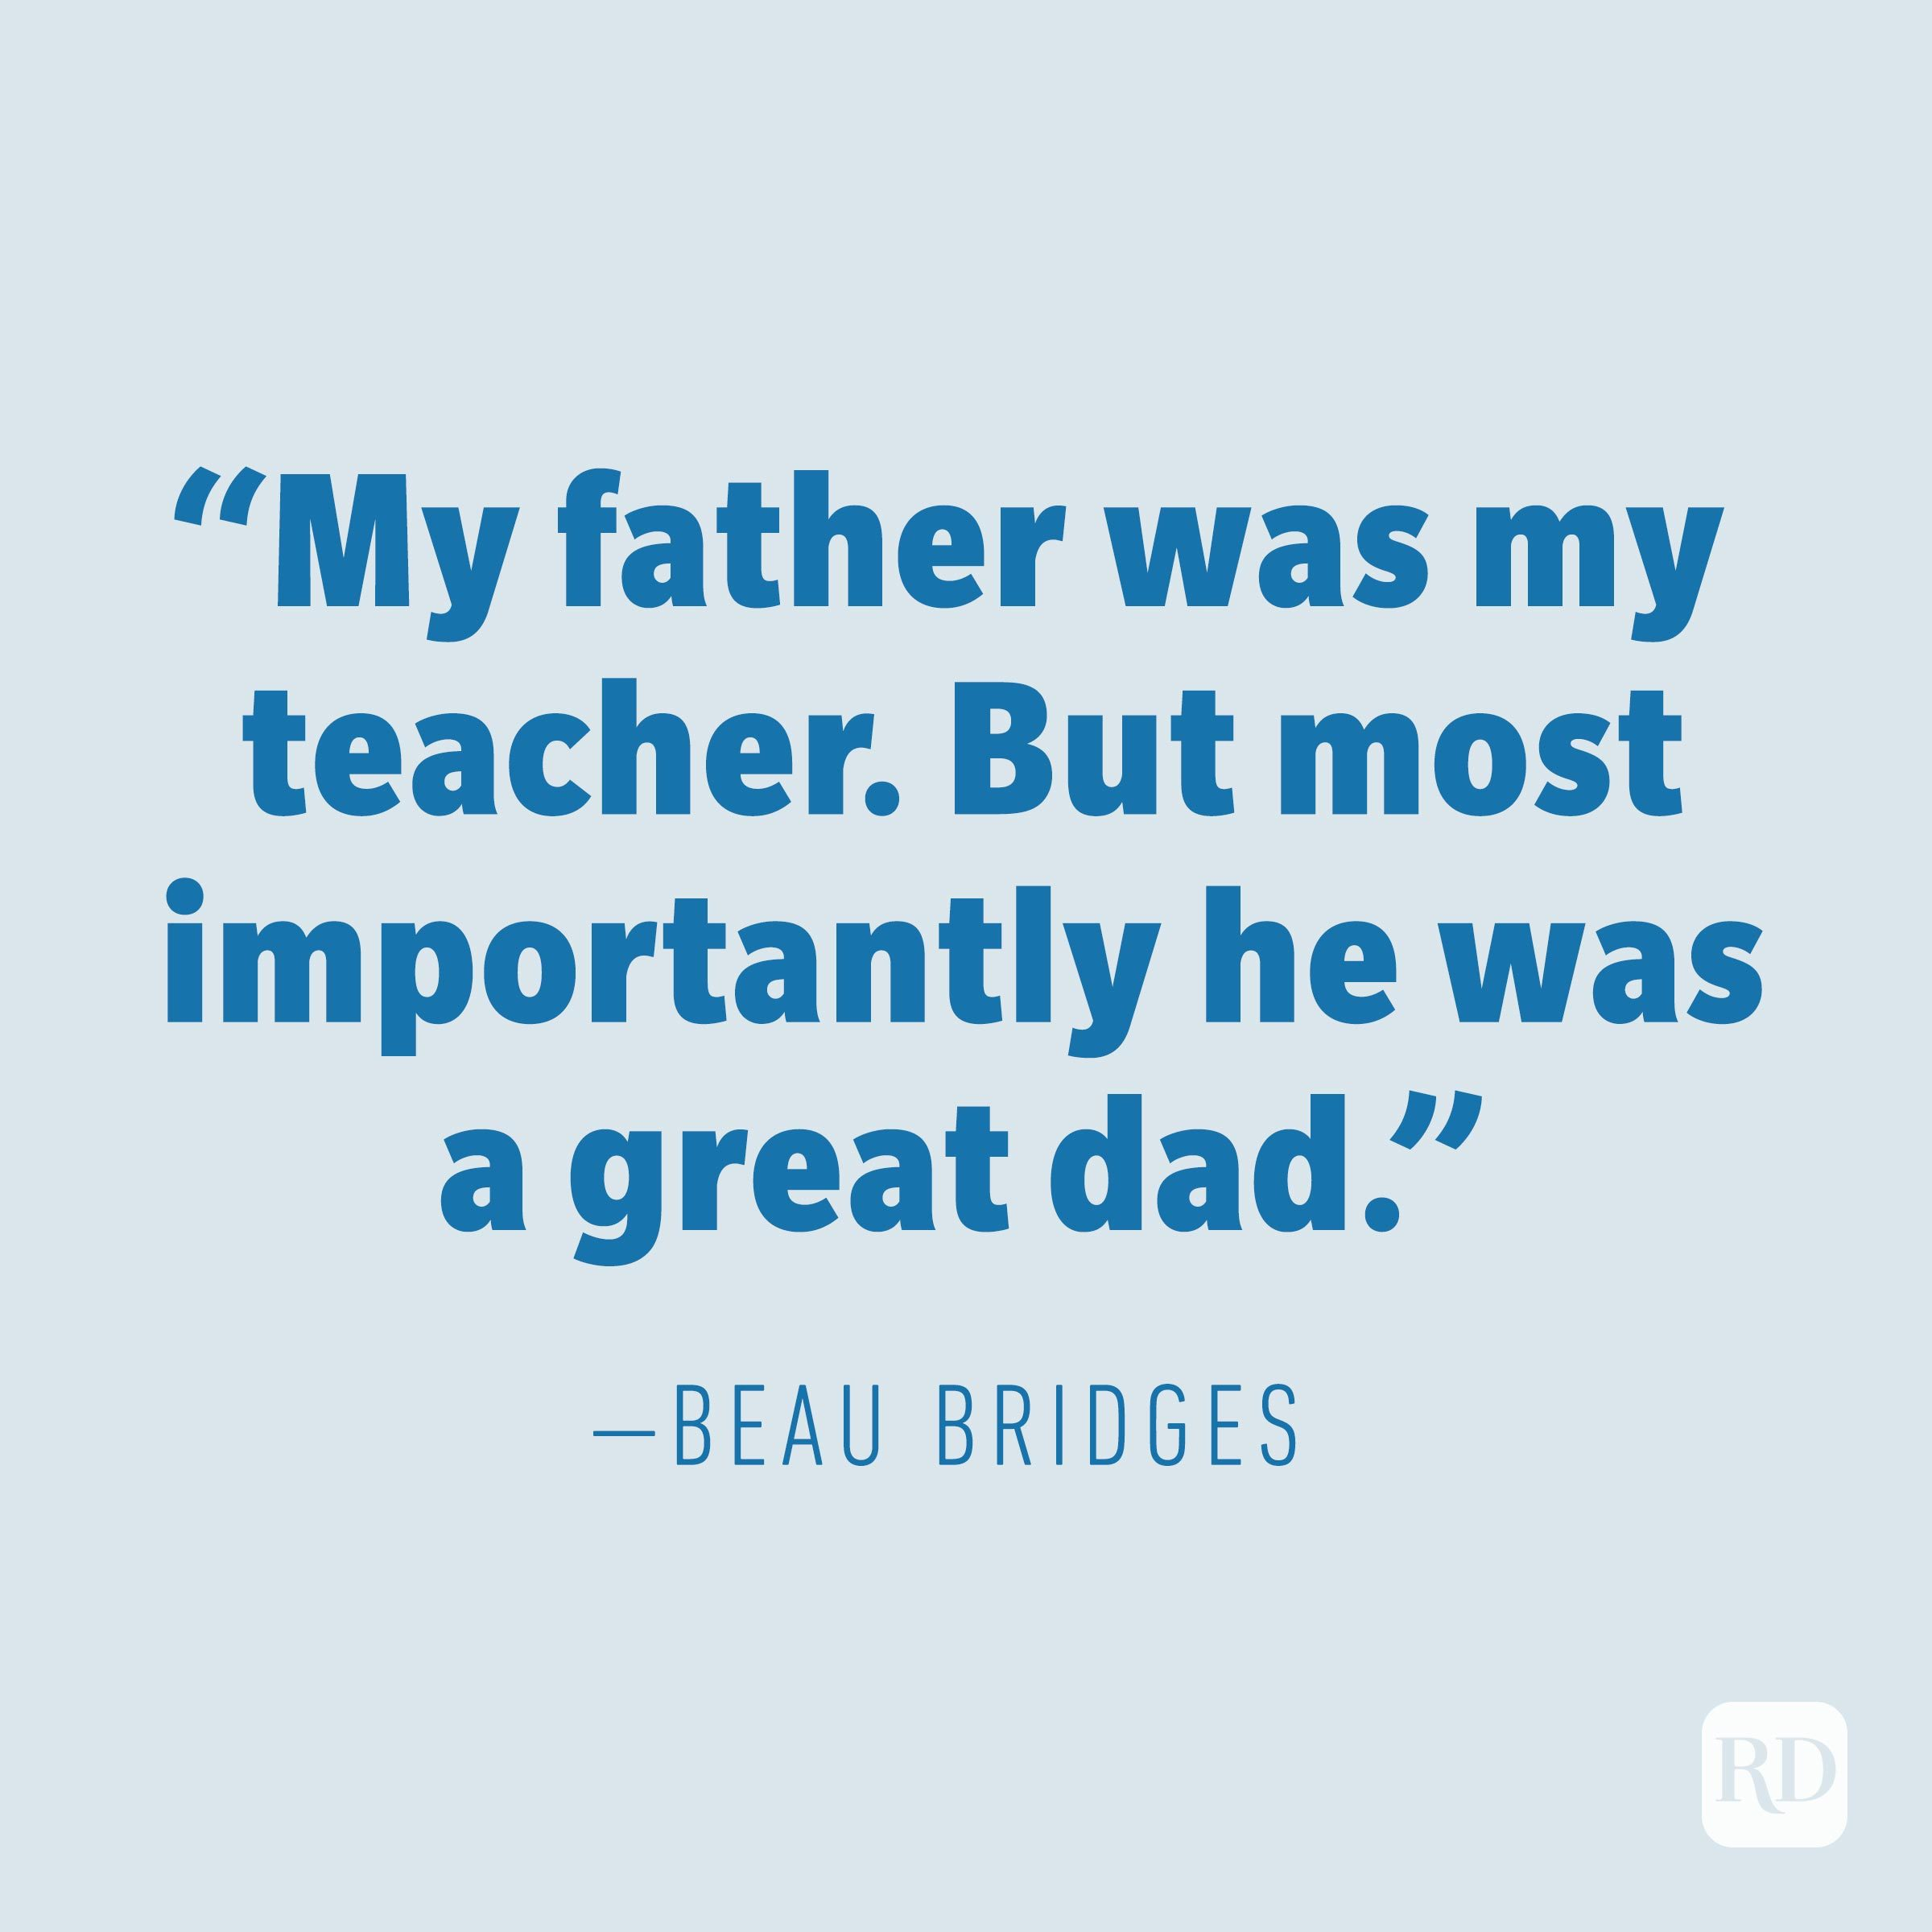 """My father was my teacher. But most importantly he was a great dad."" —BEAU BRIDGES"